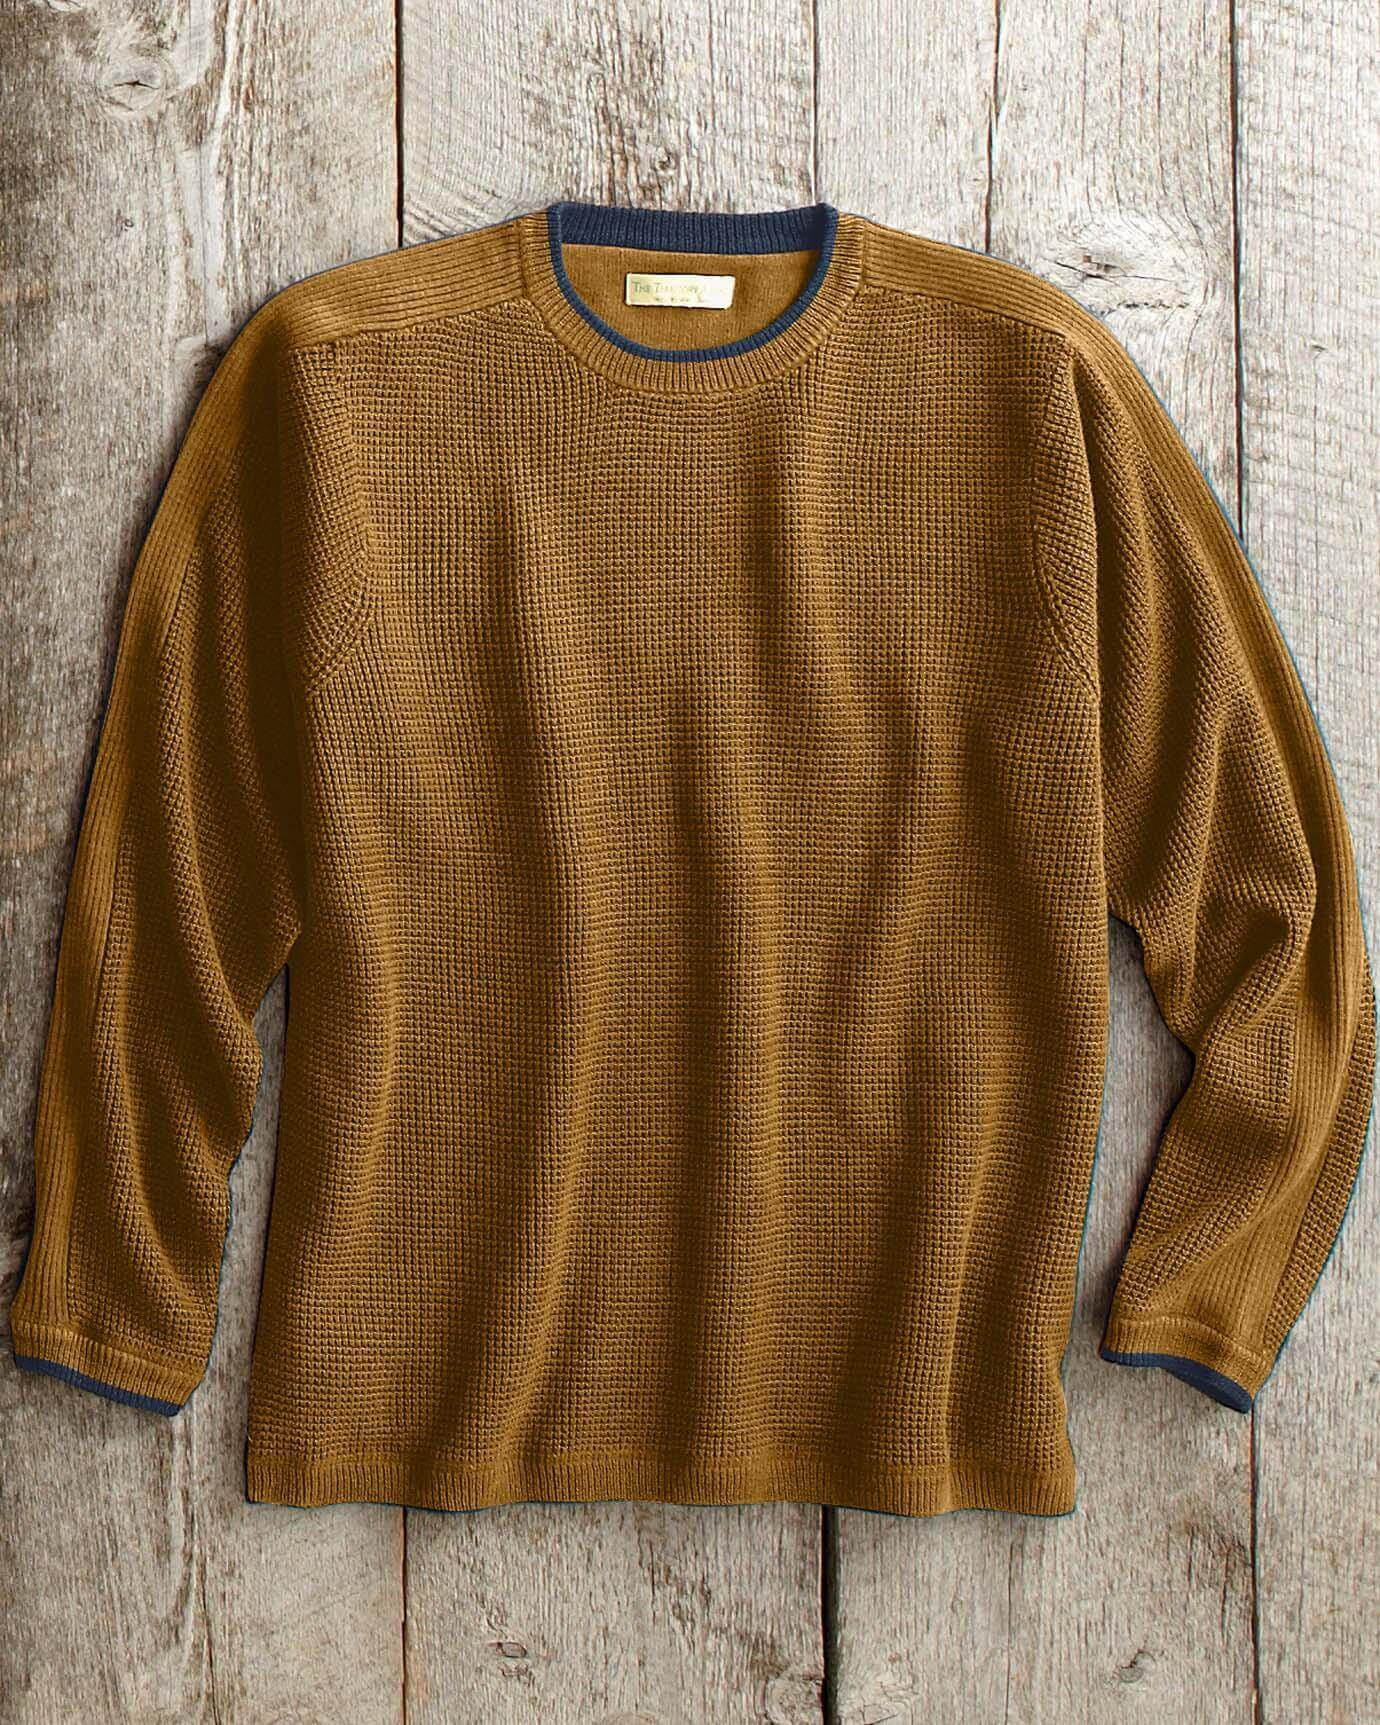 Finest fabric in the world; Vicuna sweater